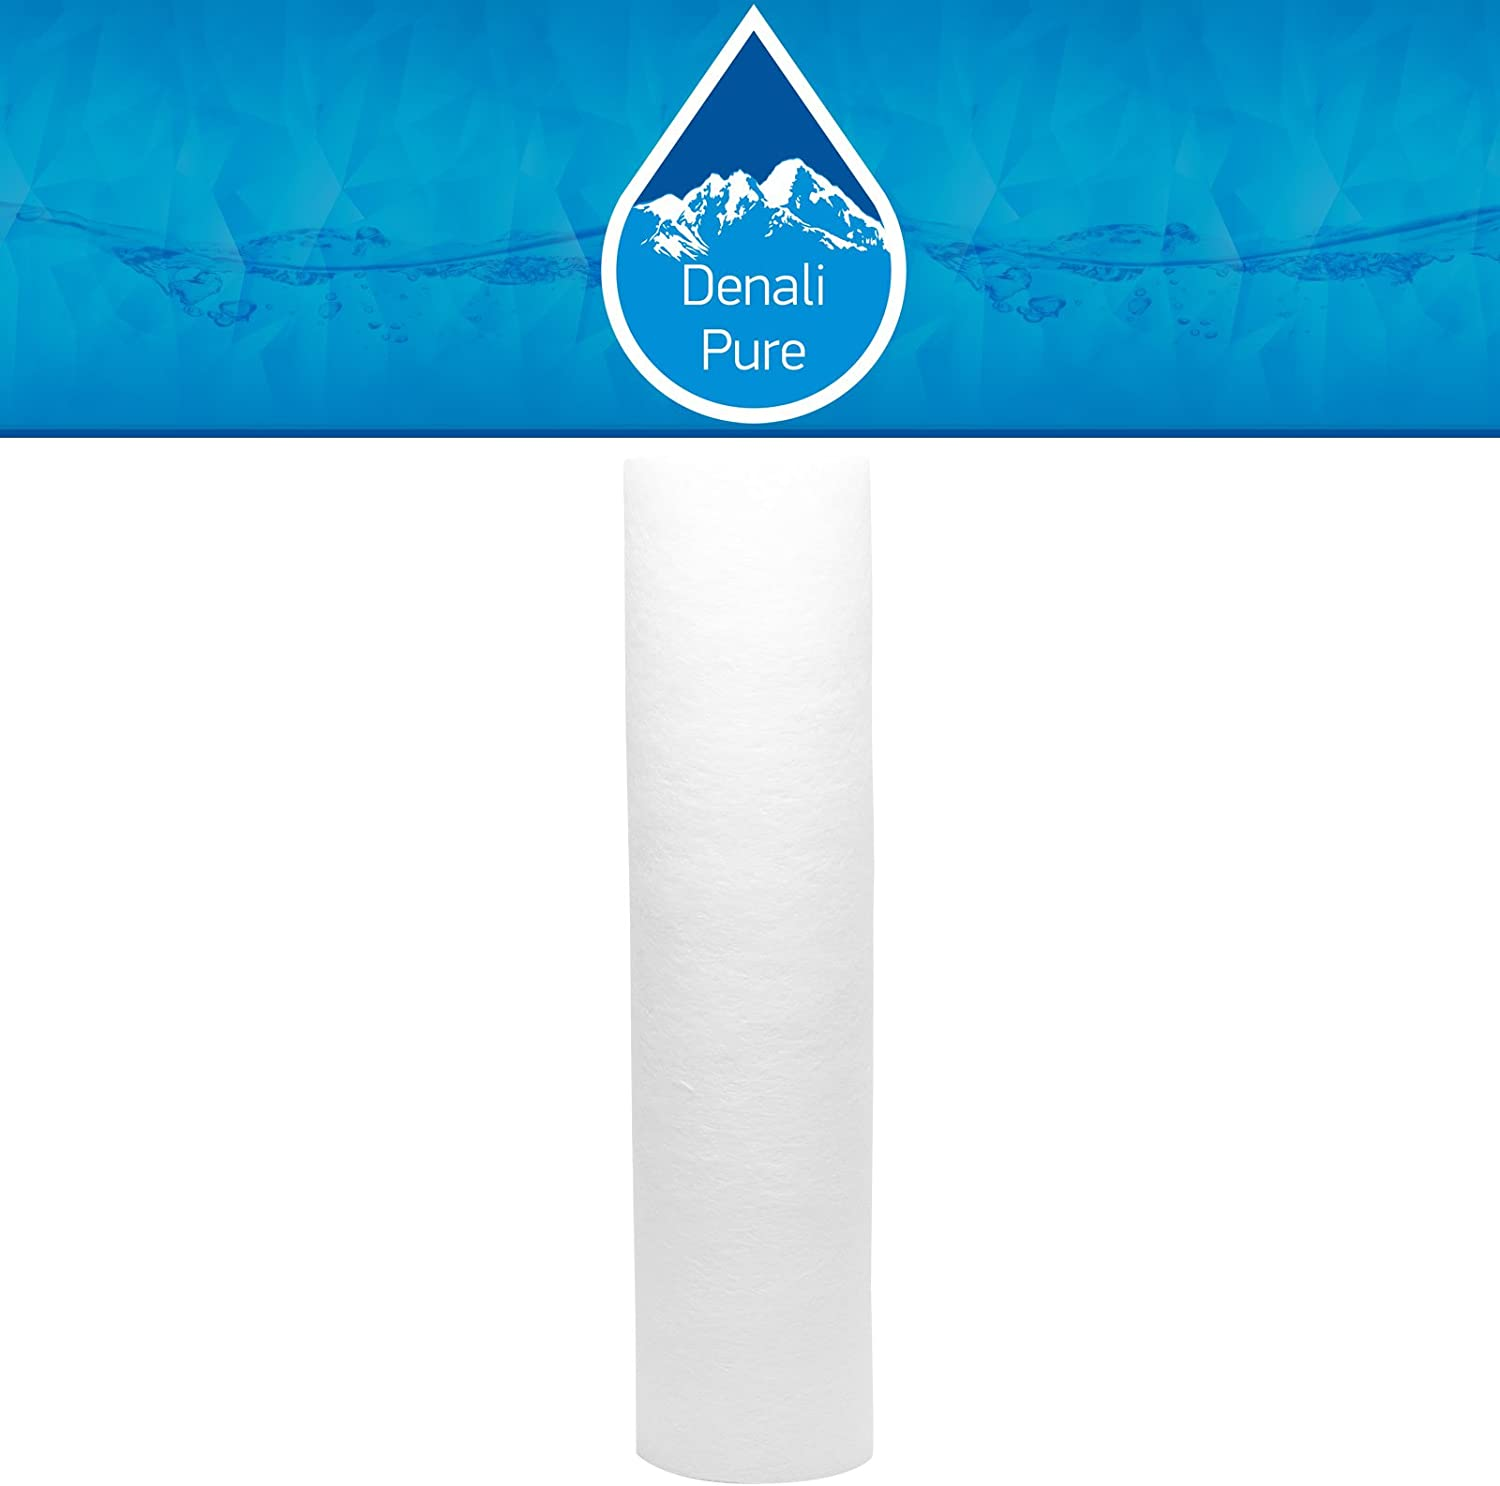 Replacement for H2O Distributors H2O-RUS-300-I Polypropylene Sediment Filter - Universal 10-inch 5-Micron Cartridge Compatible with H2O Distributors Under Sink Filter - Denali Pure Brand